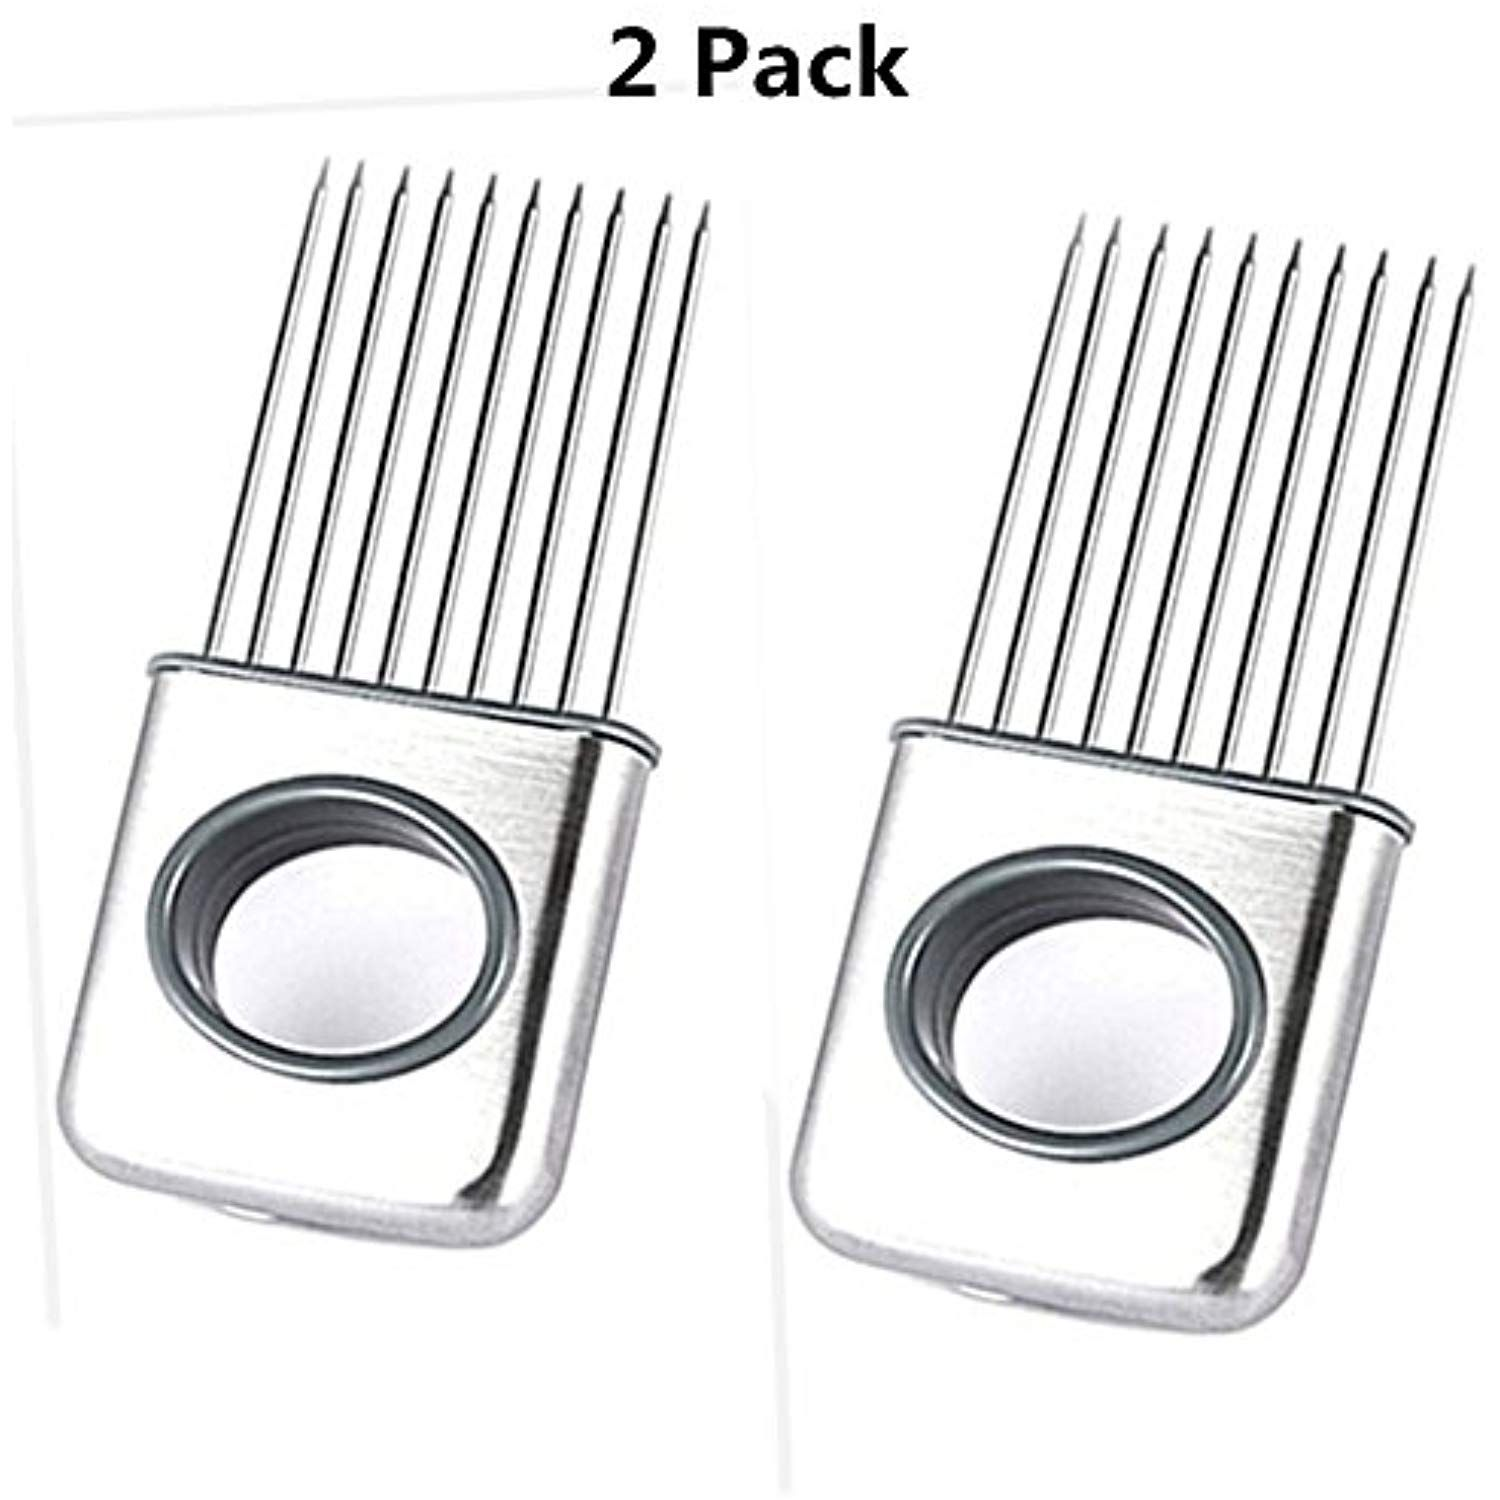 Pin On Cook S Tool Amp Gadget Sets